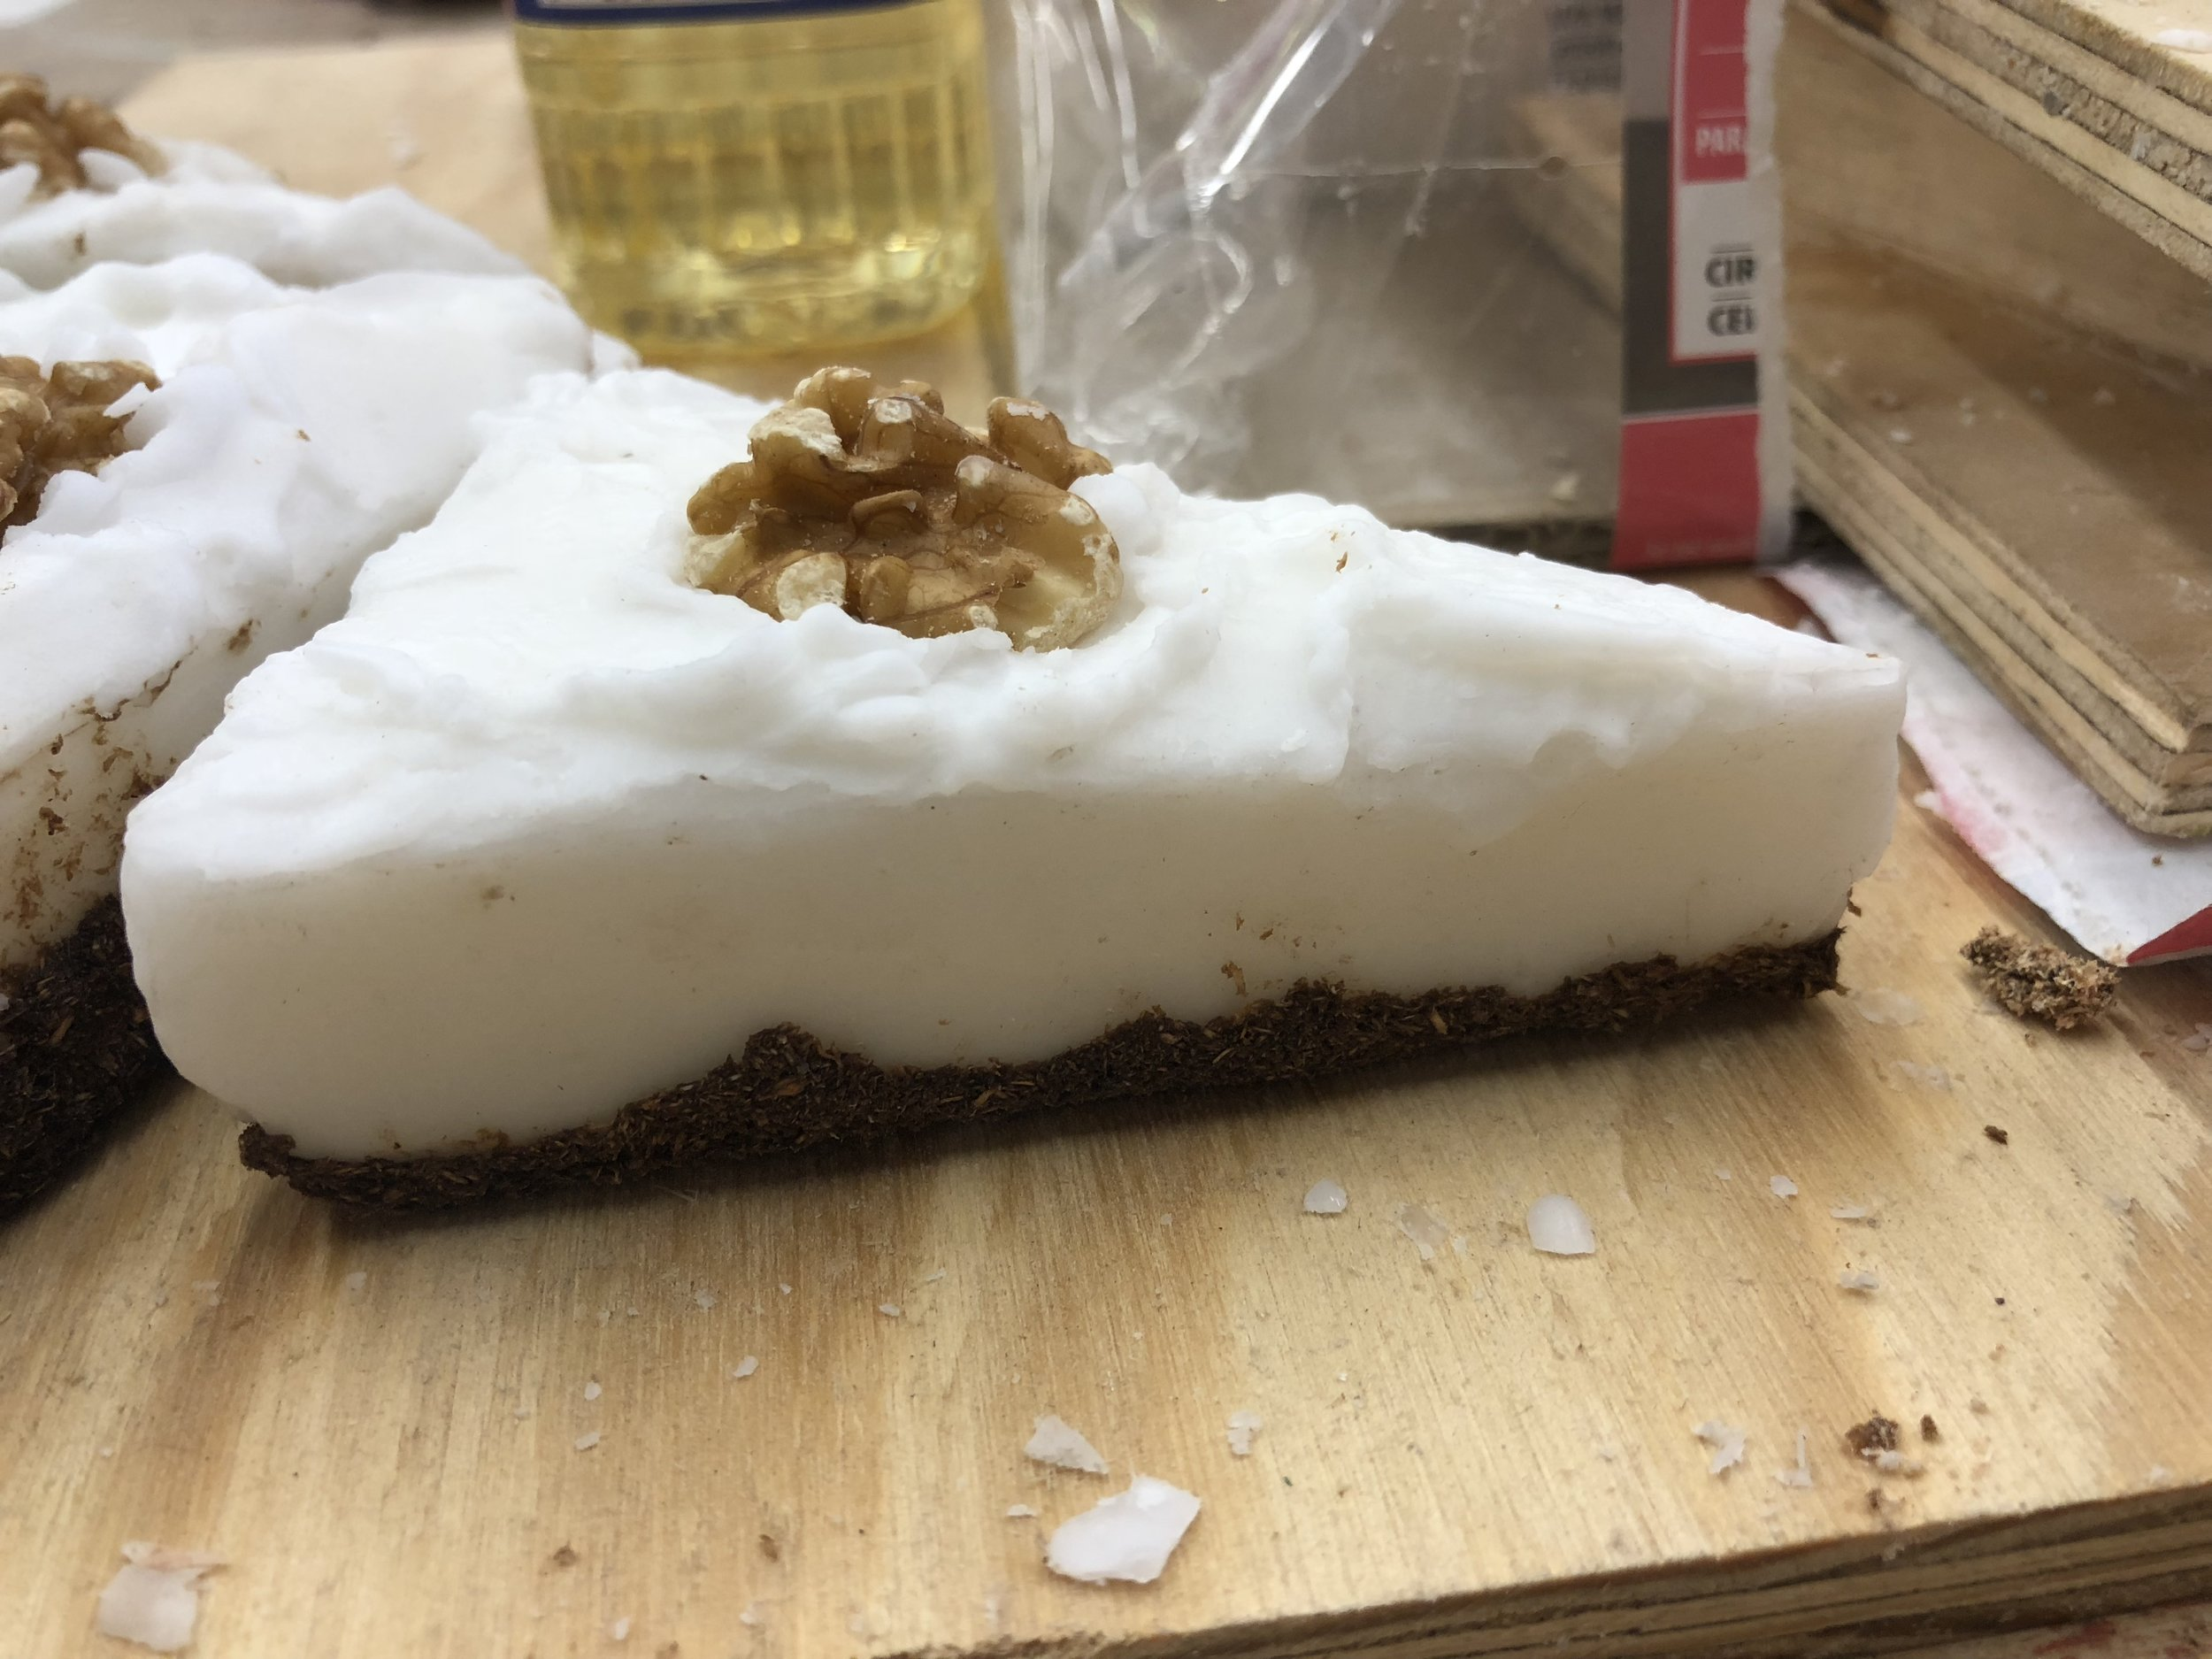 Slice of Chessecake with Sawdust Crust